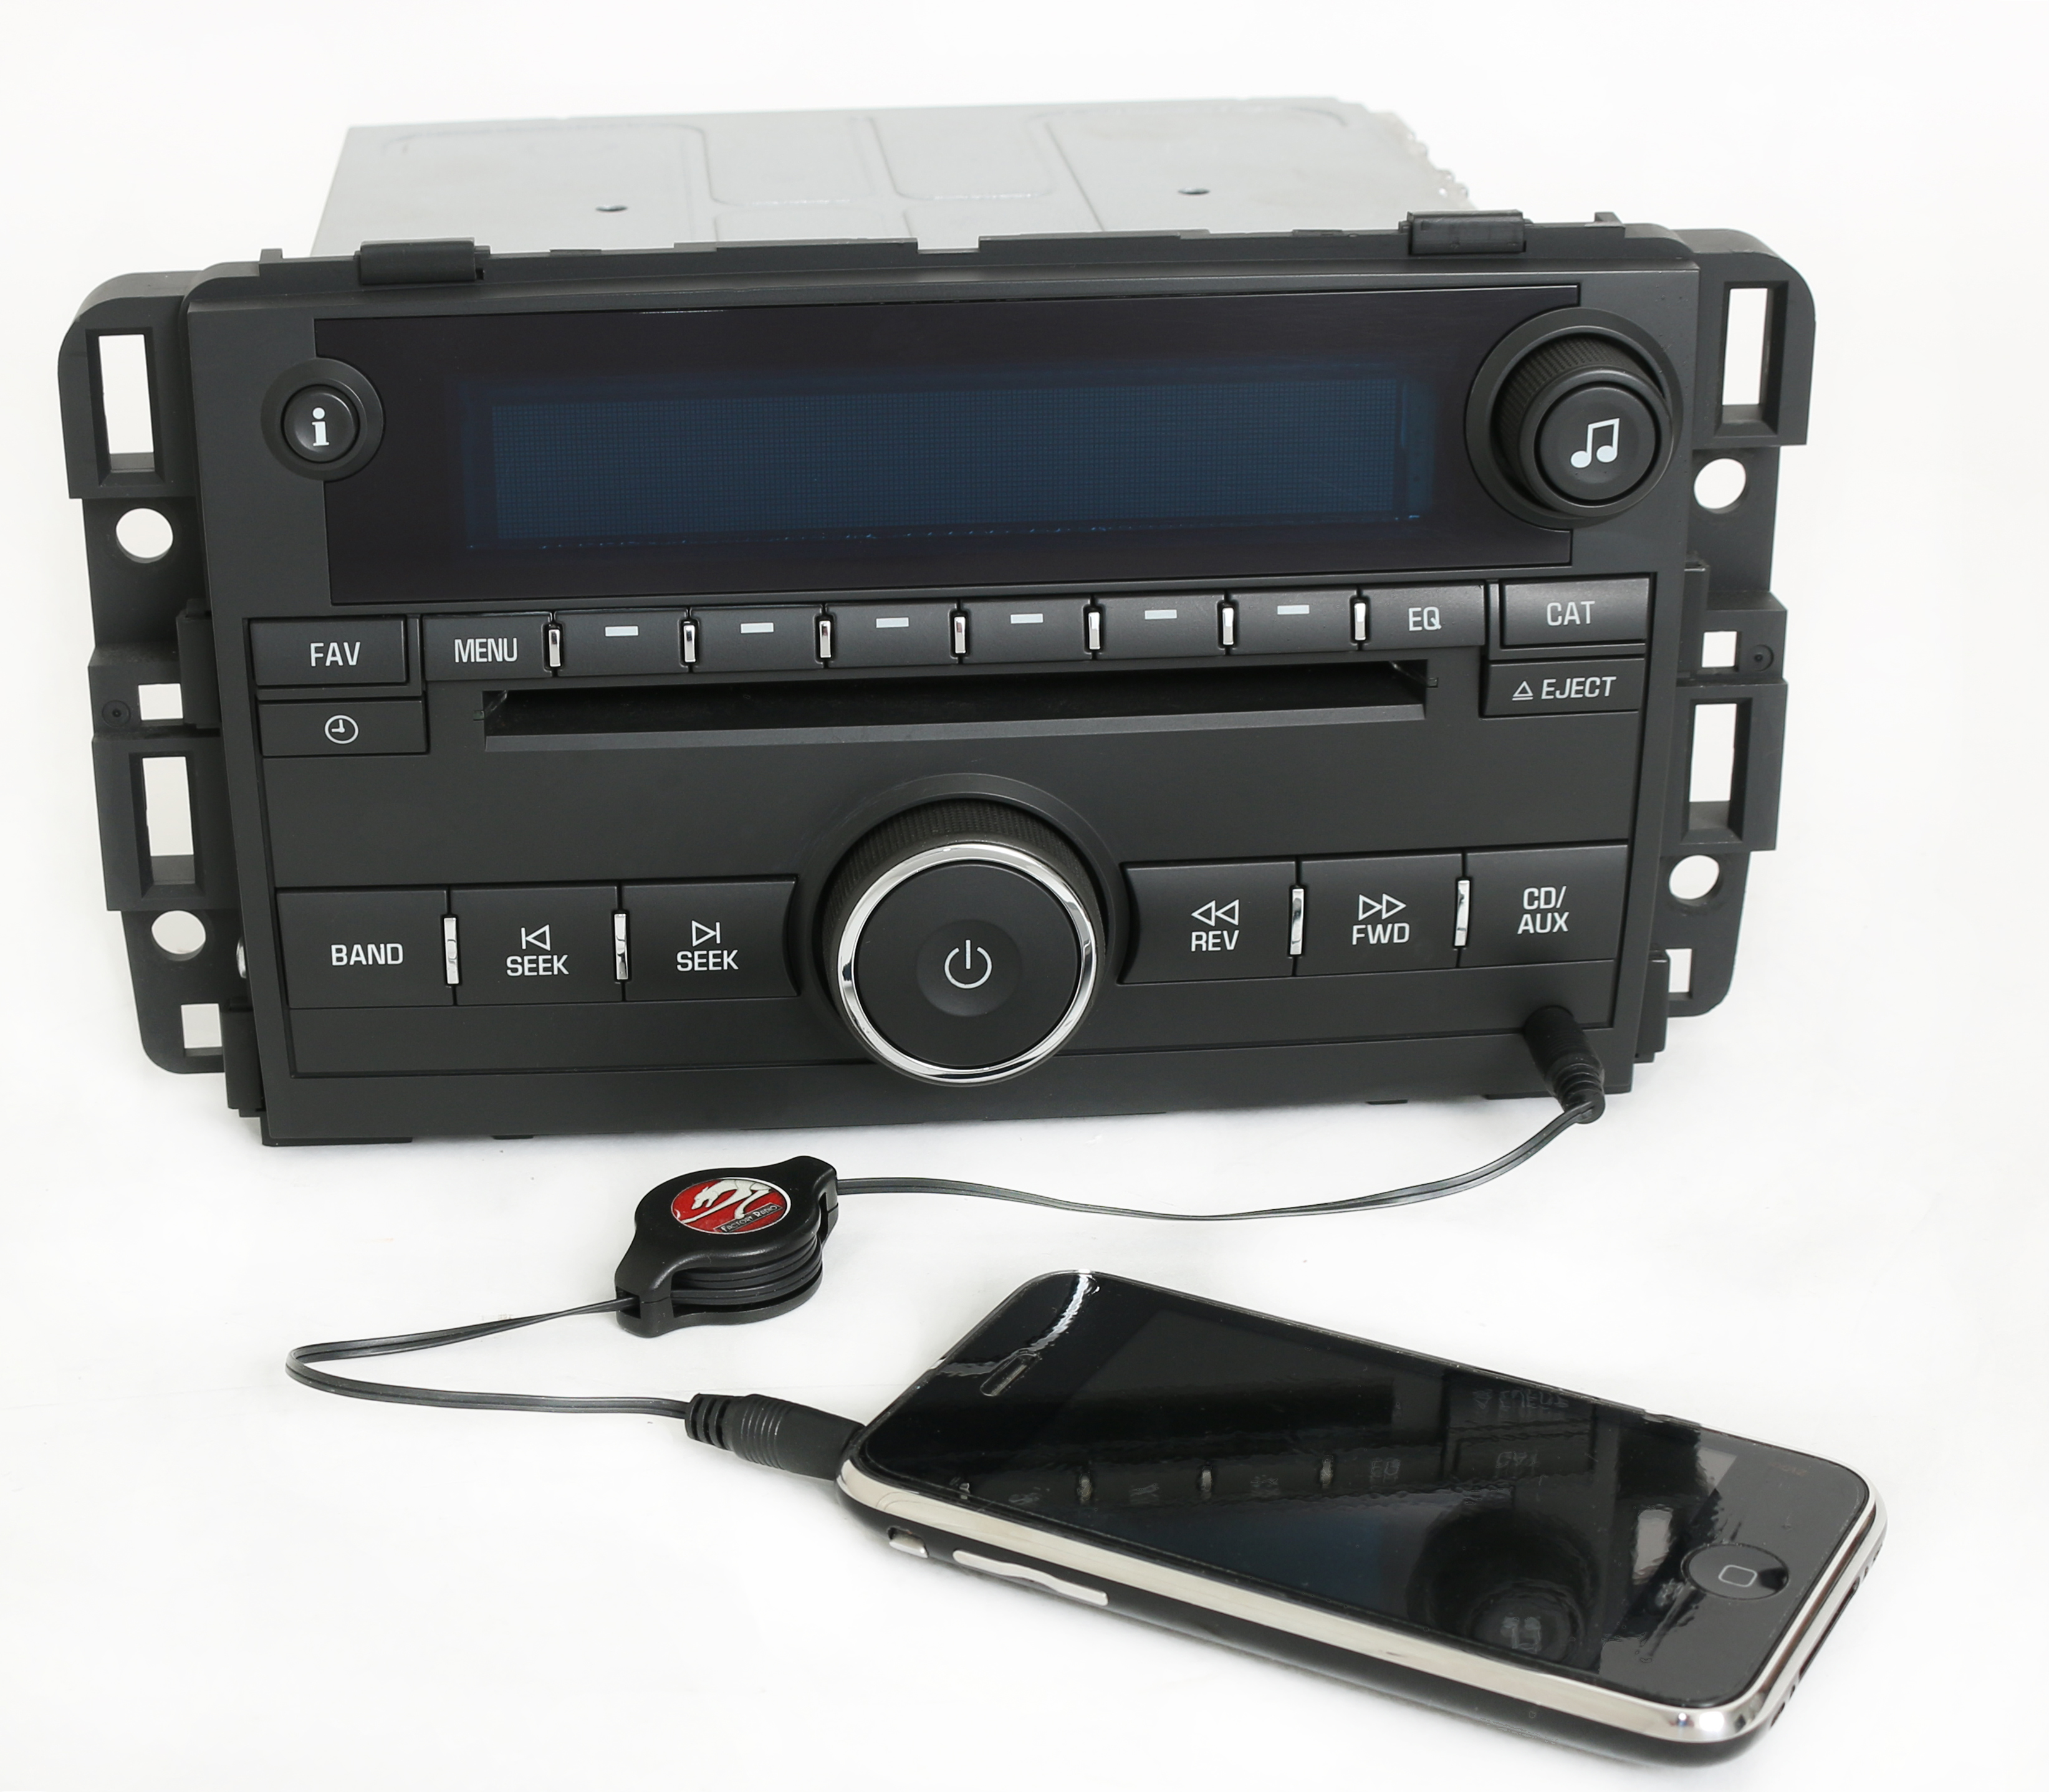 Click here to buy Chevy Impala 2011-12 Radio AM FM mp3 CD Player w Aux Input Part Number 20955156 Refurbished by GM.